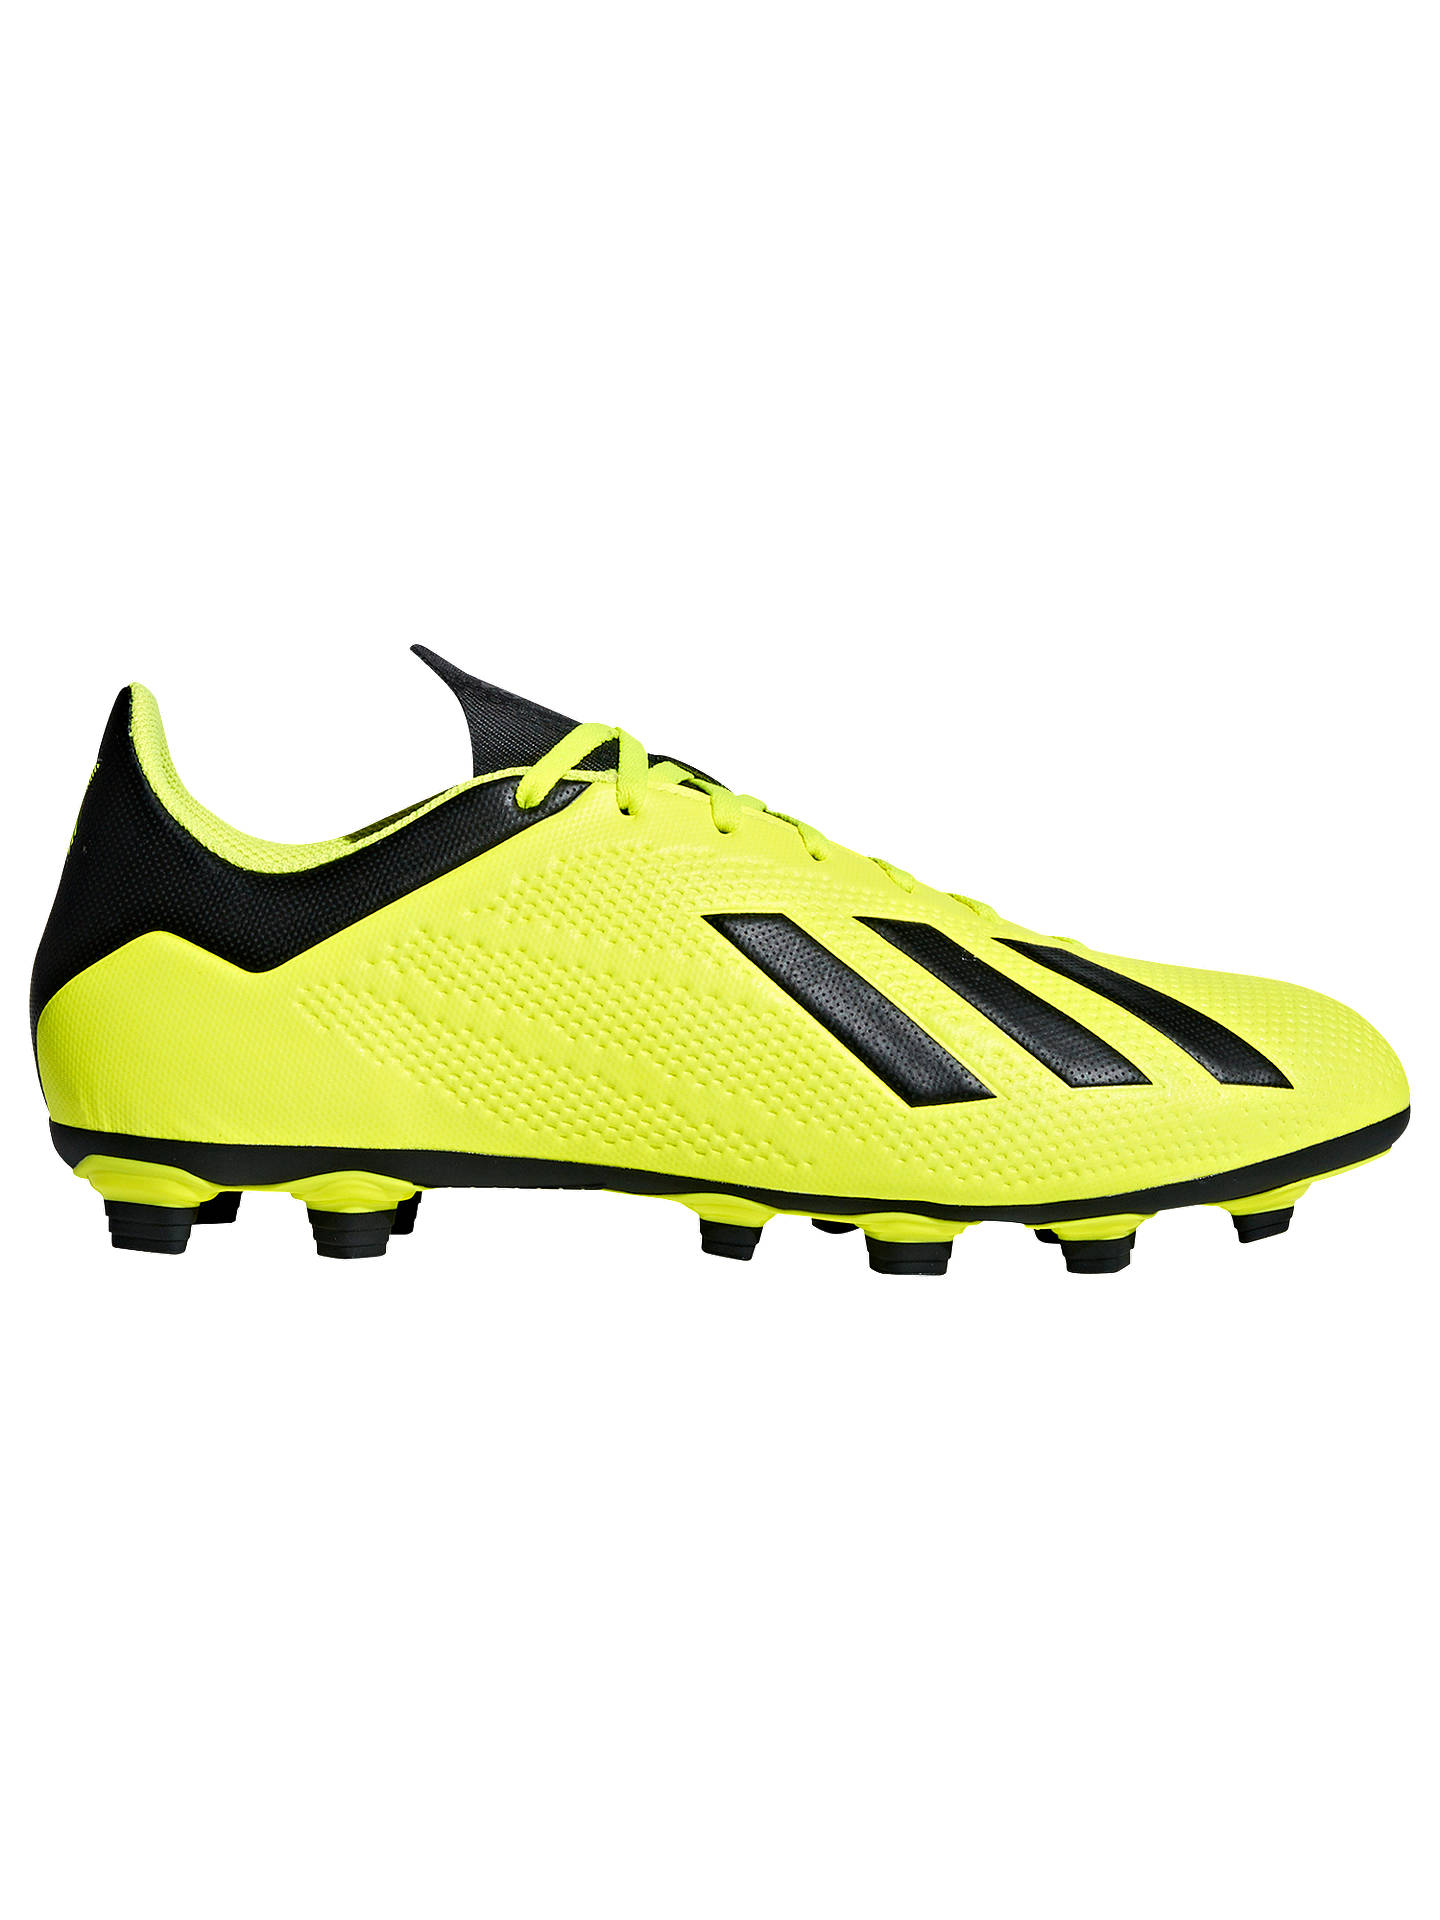 130d2fdd85a4 adidas X 18.4 FG Firm Ground Football Boots